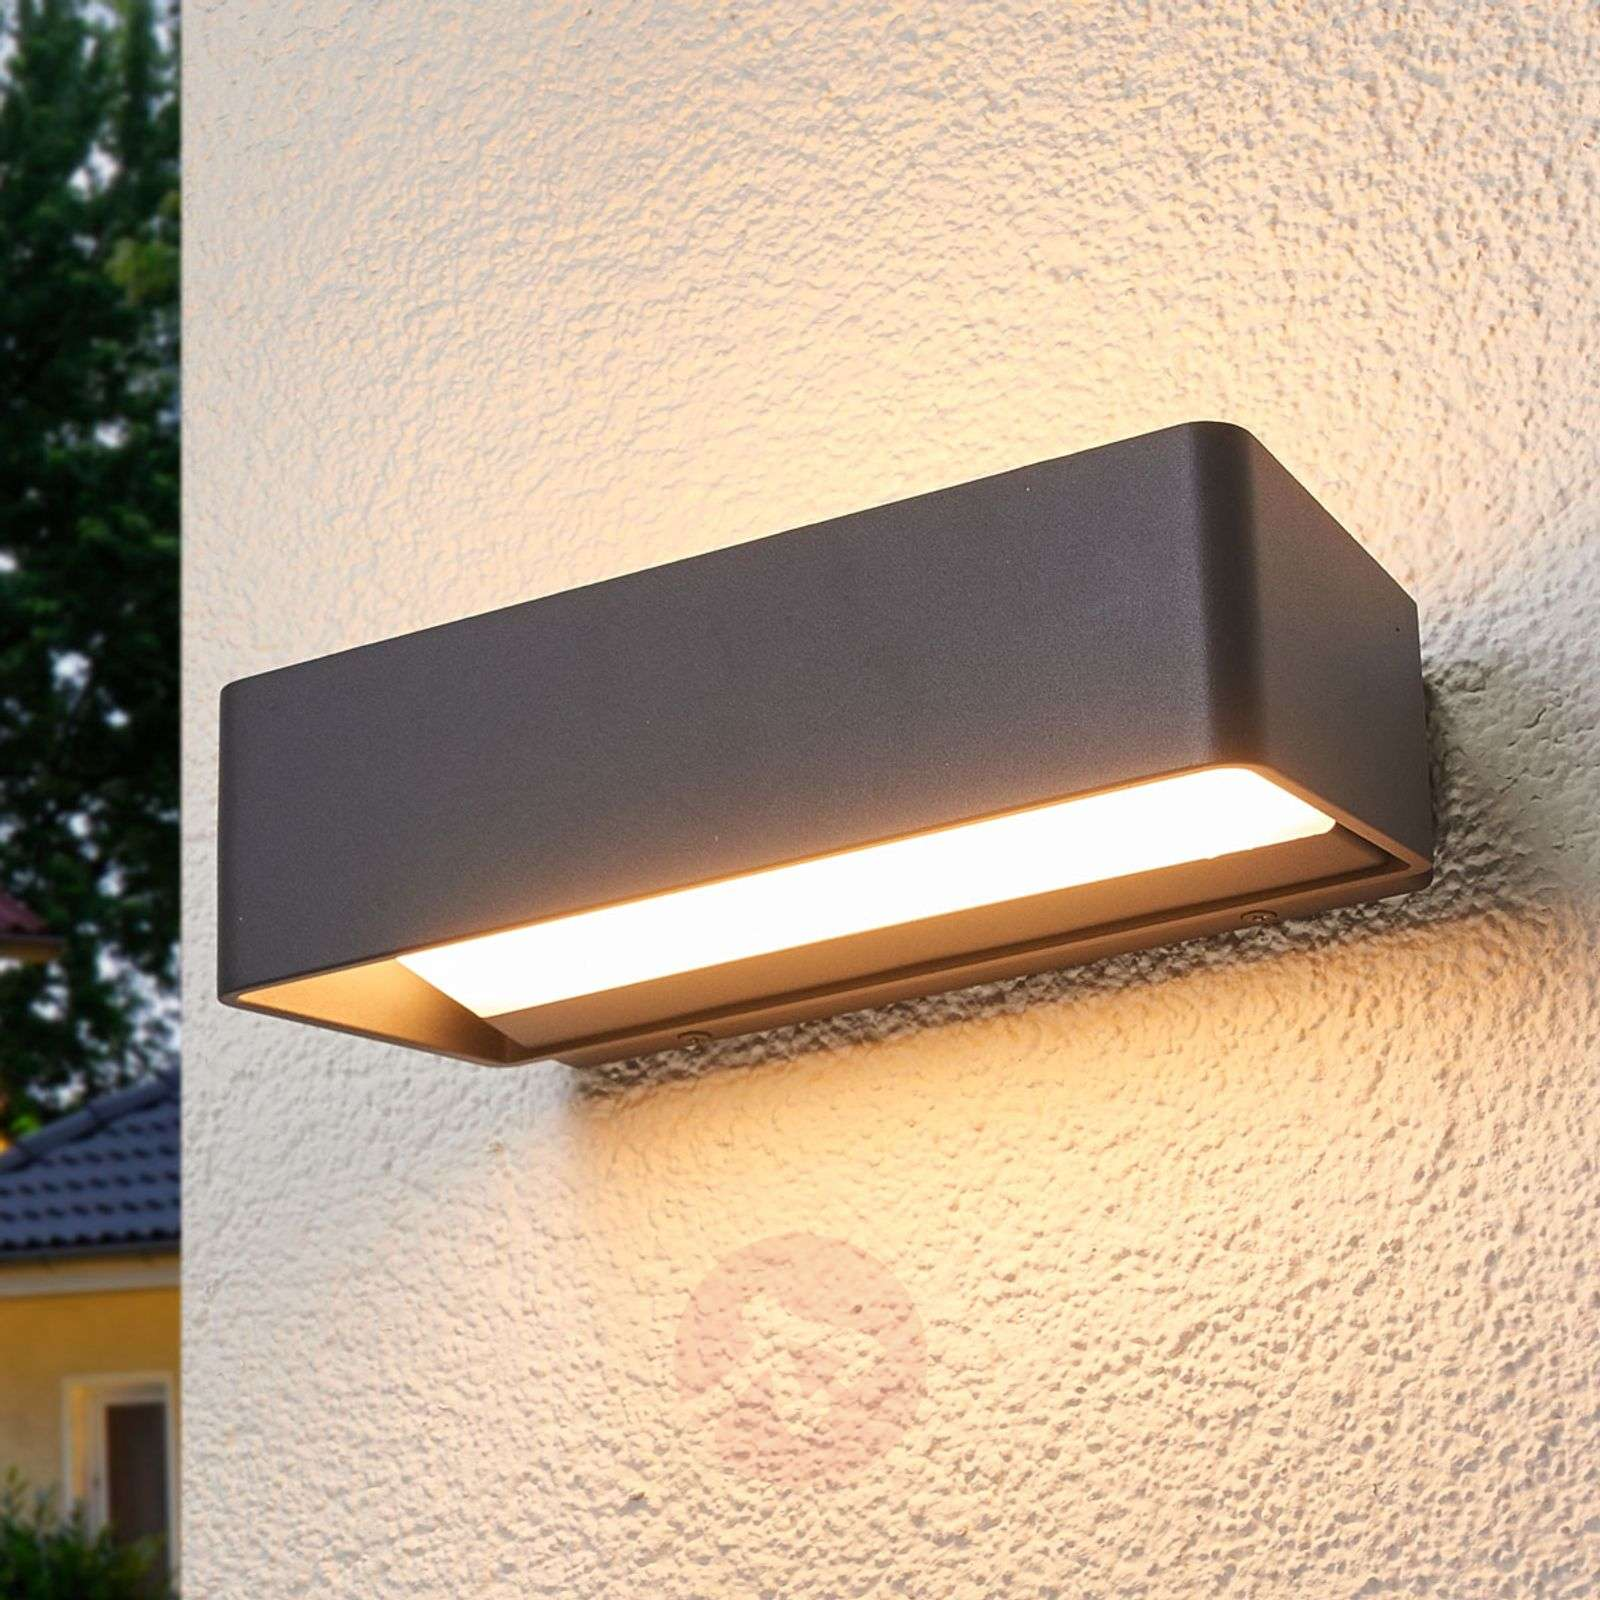 Plafoniera Da Esterno Ip65 : Acquista logan applique led da esterni ip65 lampade.it